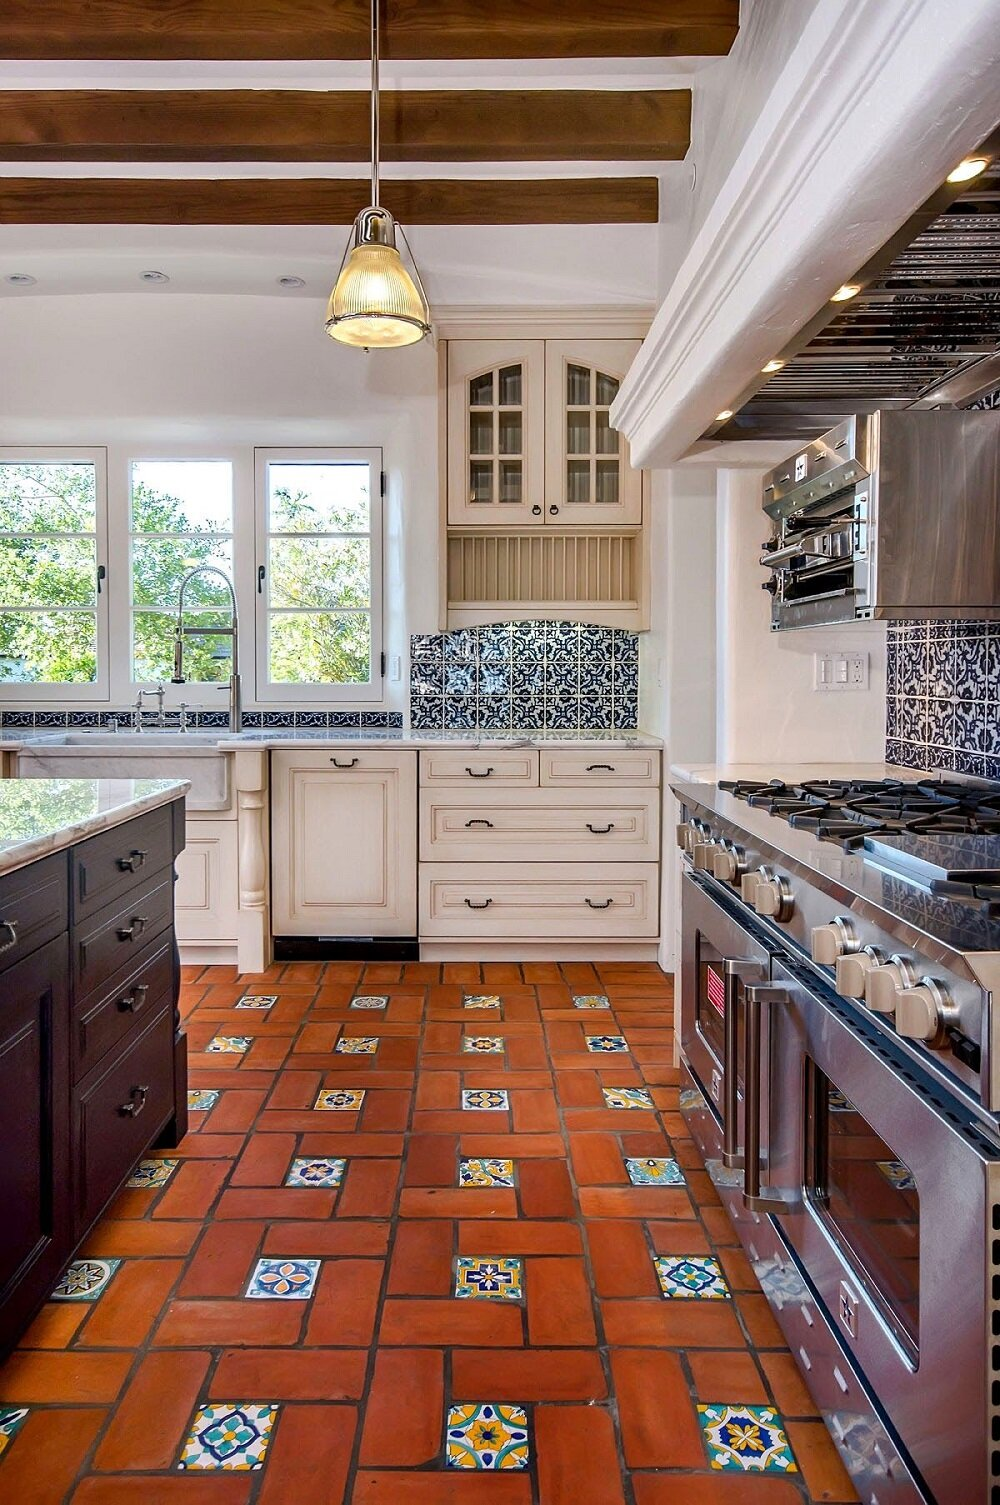 t3-1-3 Try a Spanish style kitchen.  Here are some amazing decorating ideas